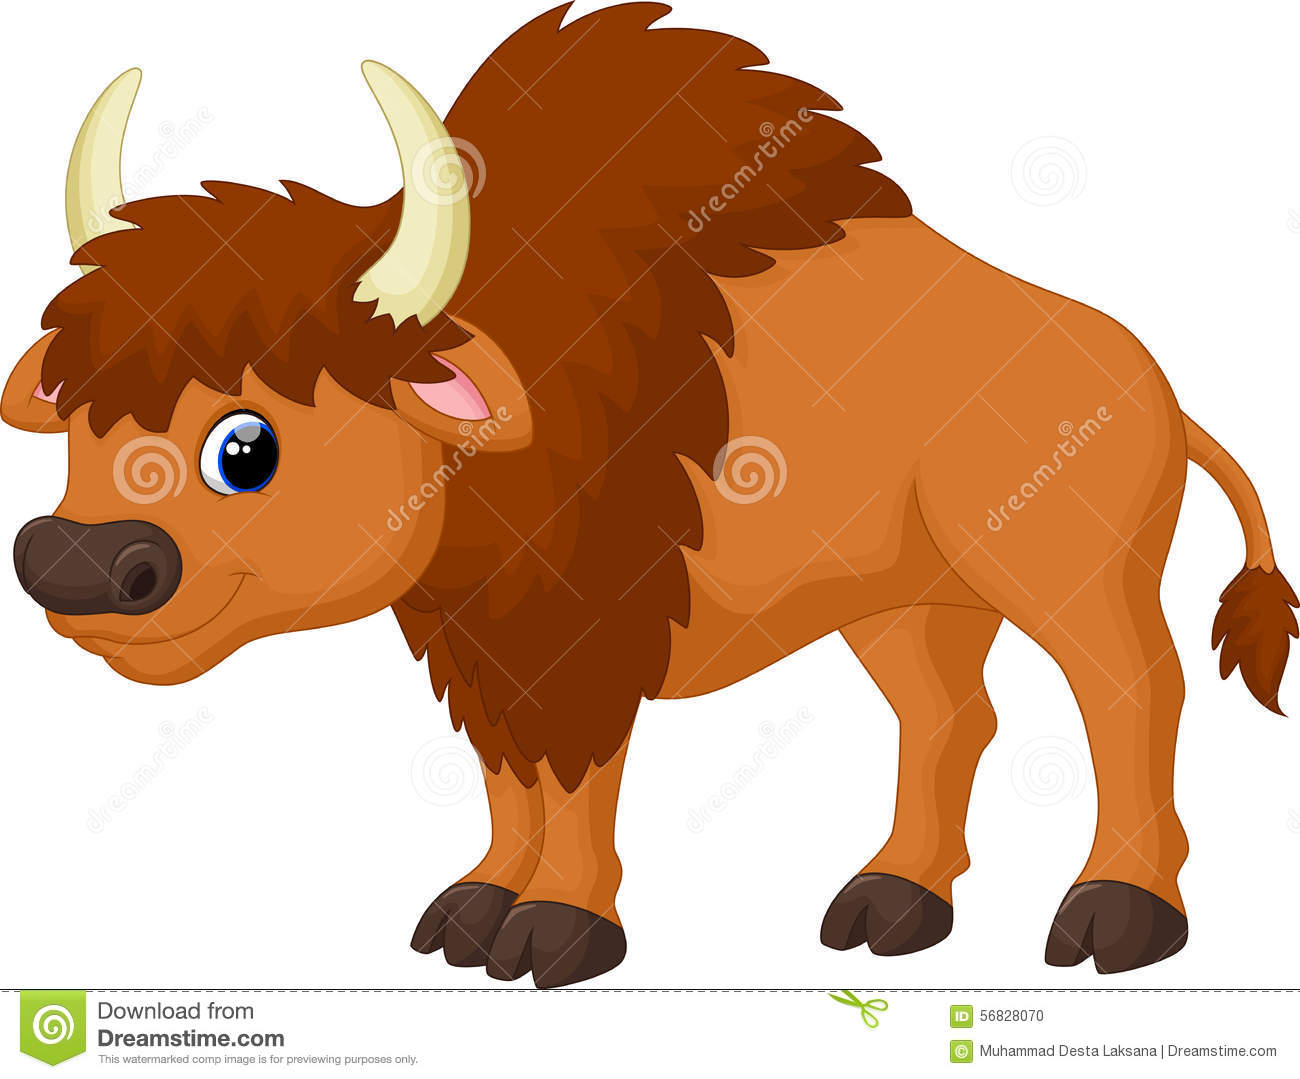 Bison clipart animated. Cartoon buffalo free download